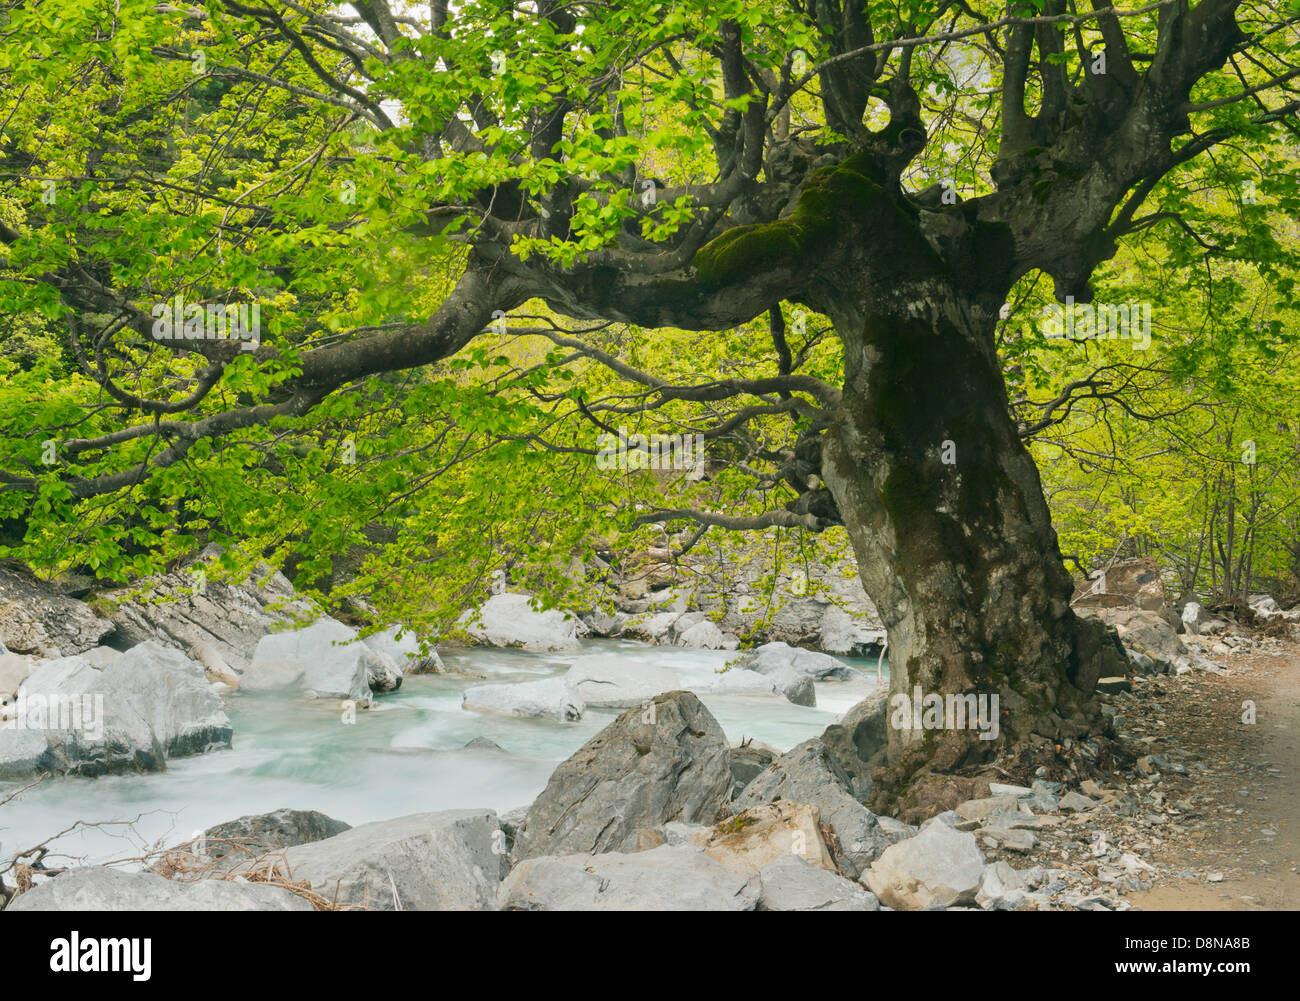 Old Growth Copper Beech (Fagus sylvatica) Ordesa-Monte Perdido National Park, Pyrenees, Spain UNESCO WORLD HERITAGE - Stock Image